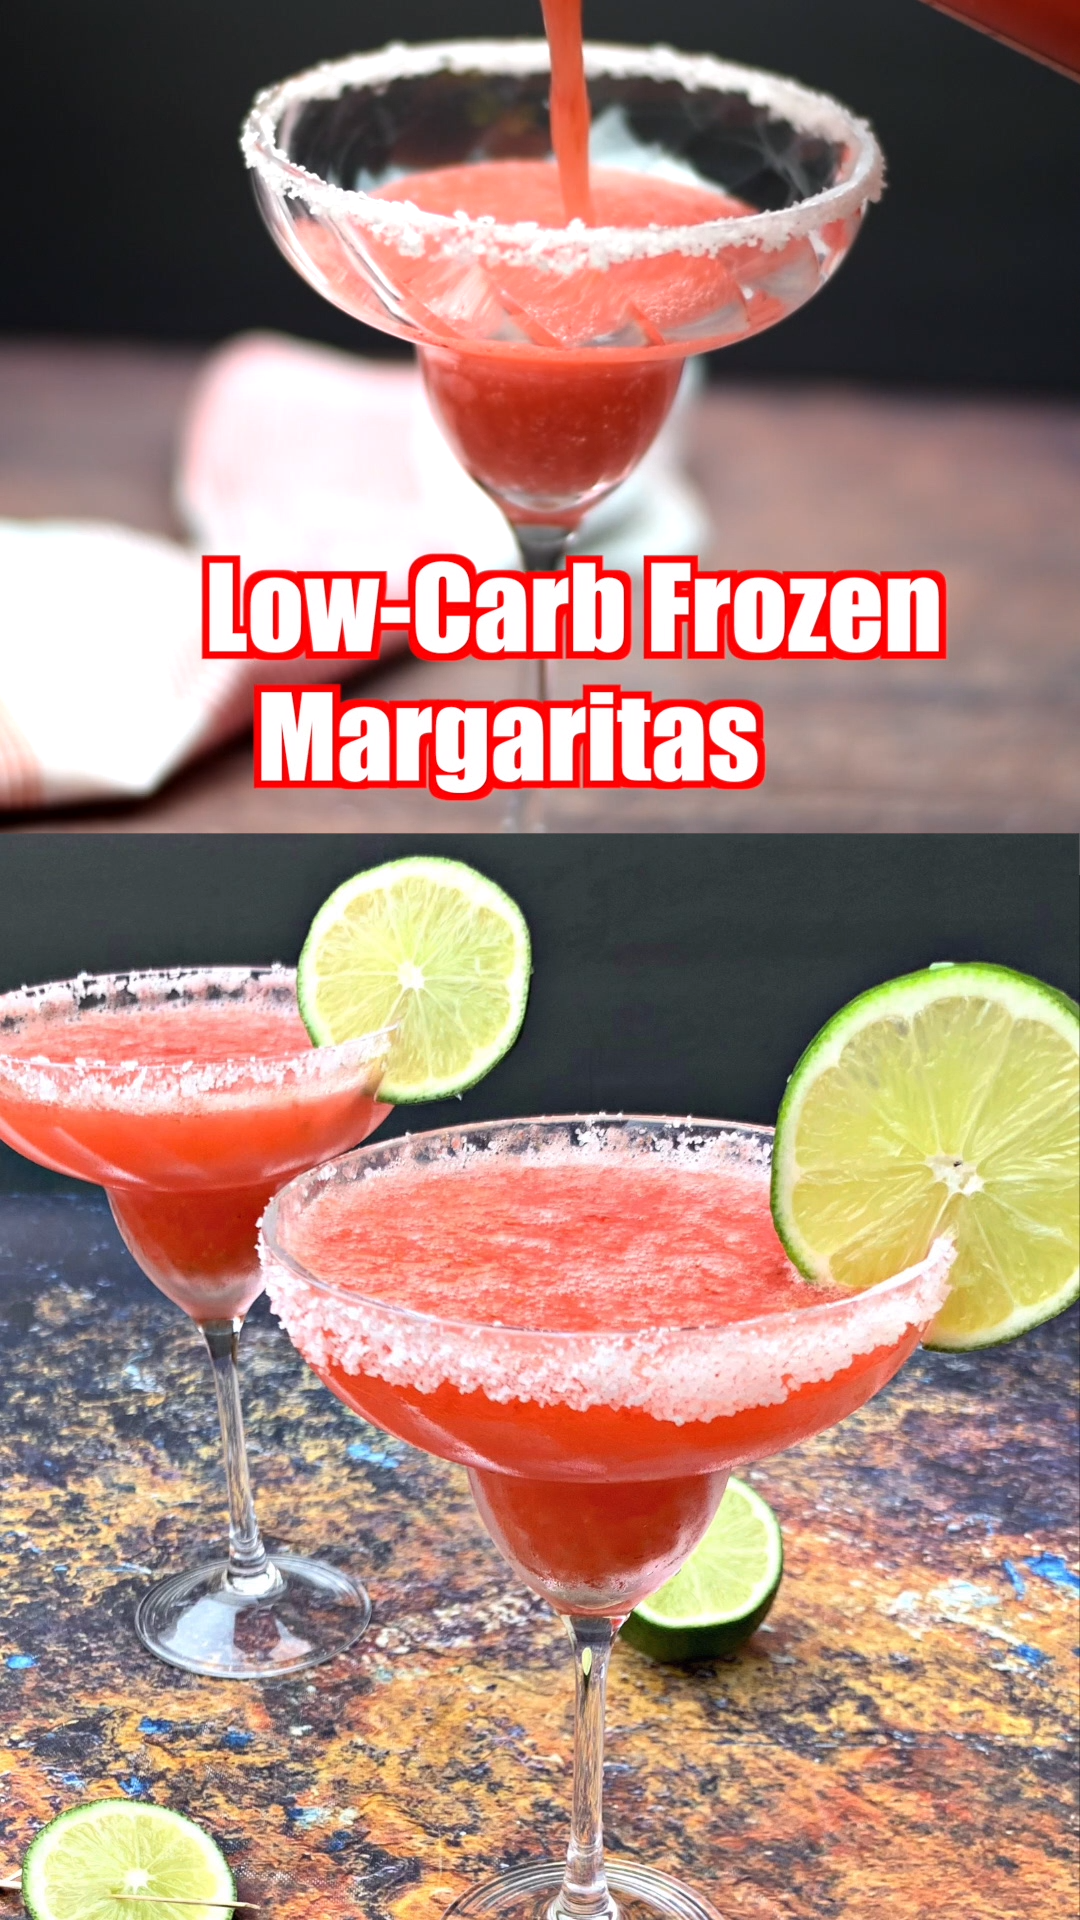 Keto Low-Carb Skinny Frozen Strawberry Margarita Cocktails  #frozenmargaritarecipes